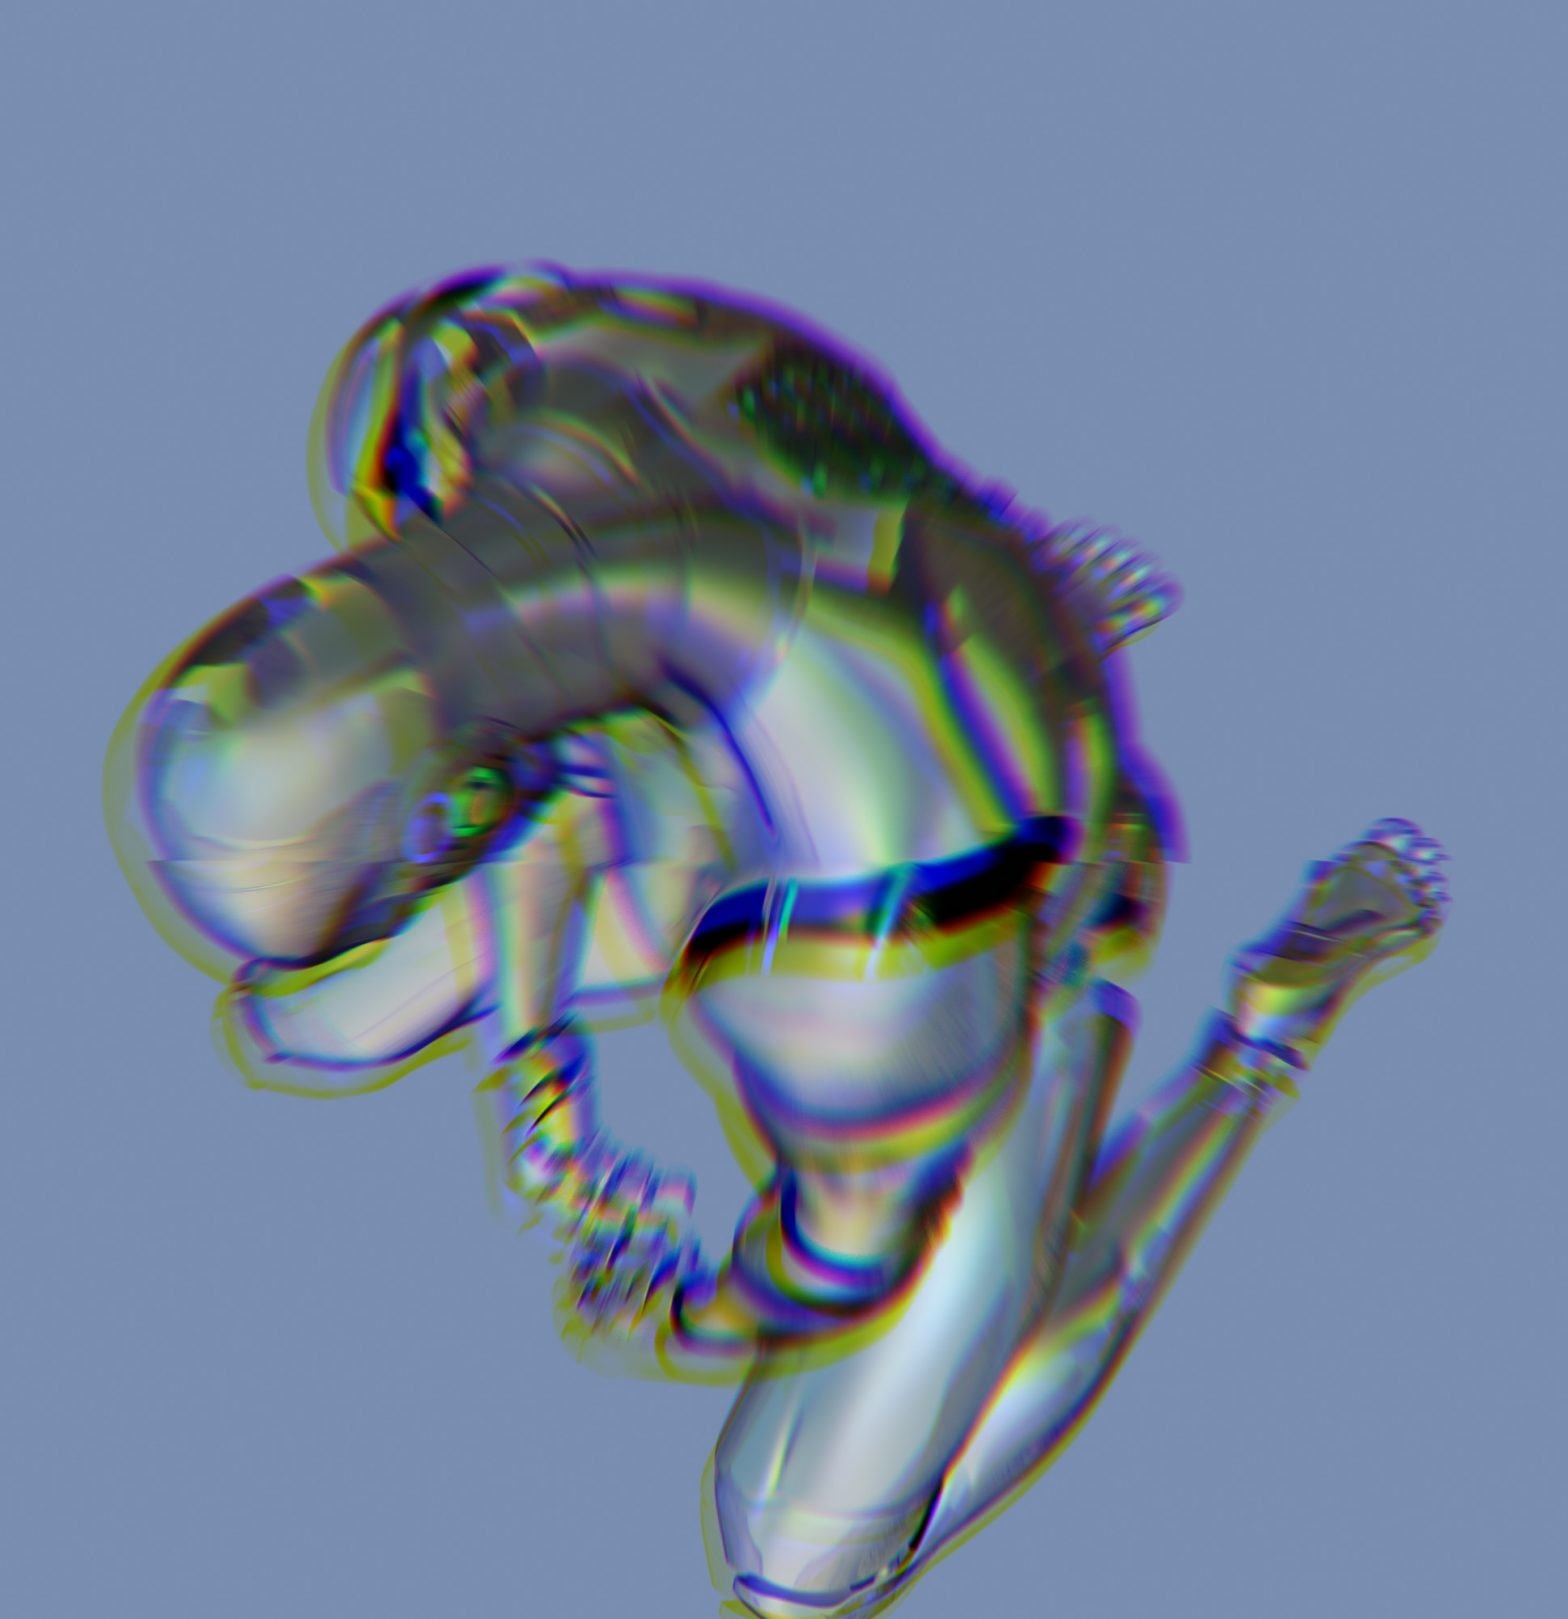 Glitchy image of a robot man